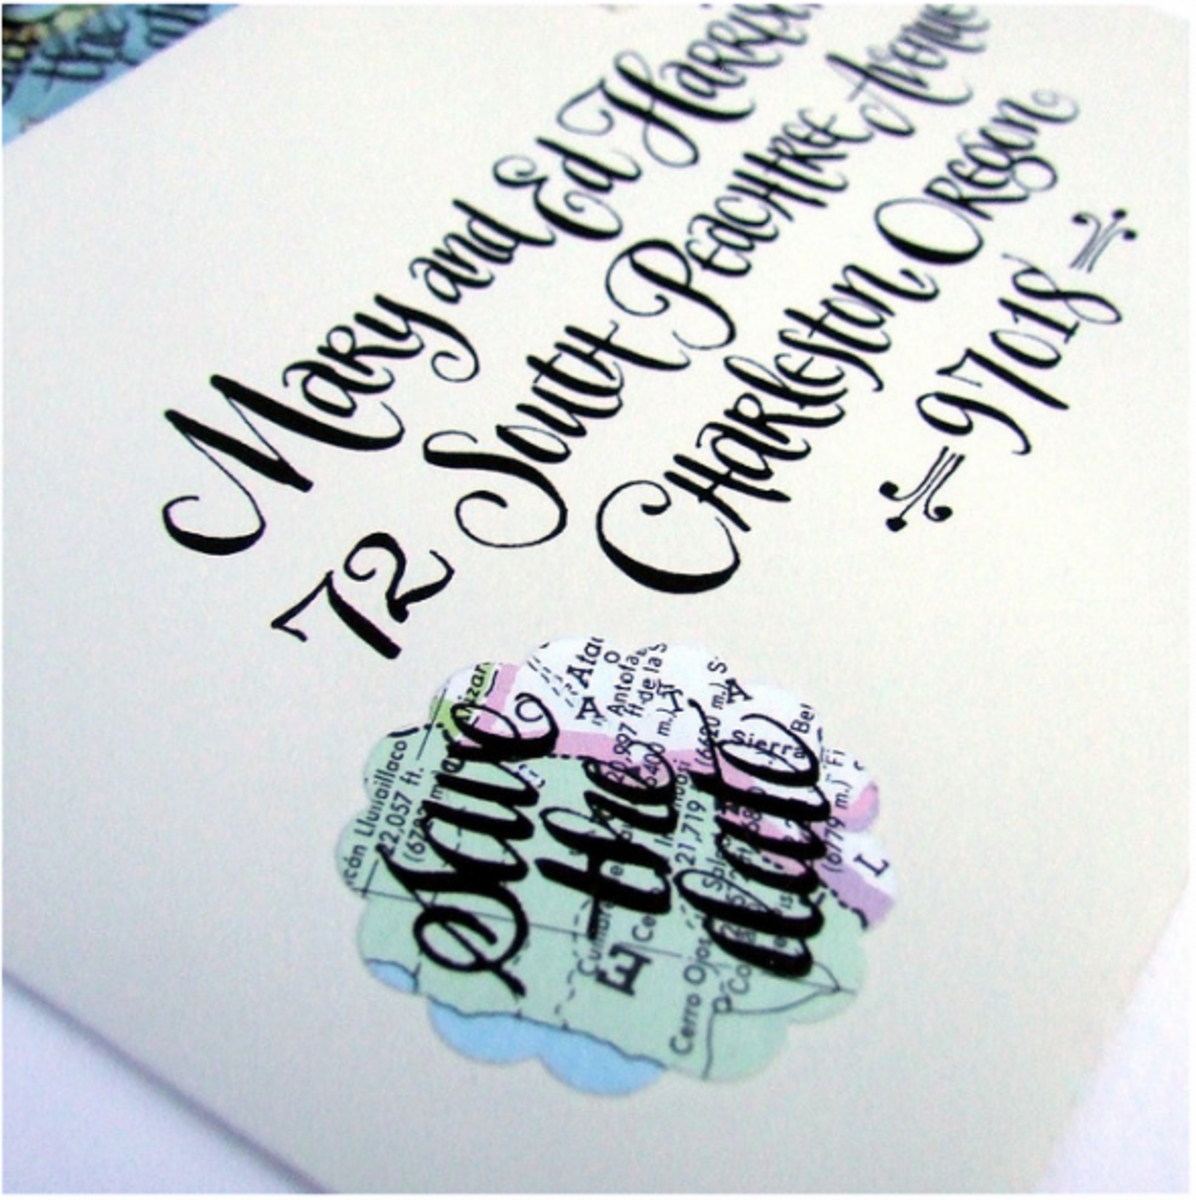 Calligraphy is very popular for weddings especially.